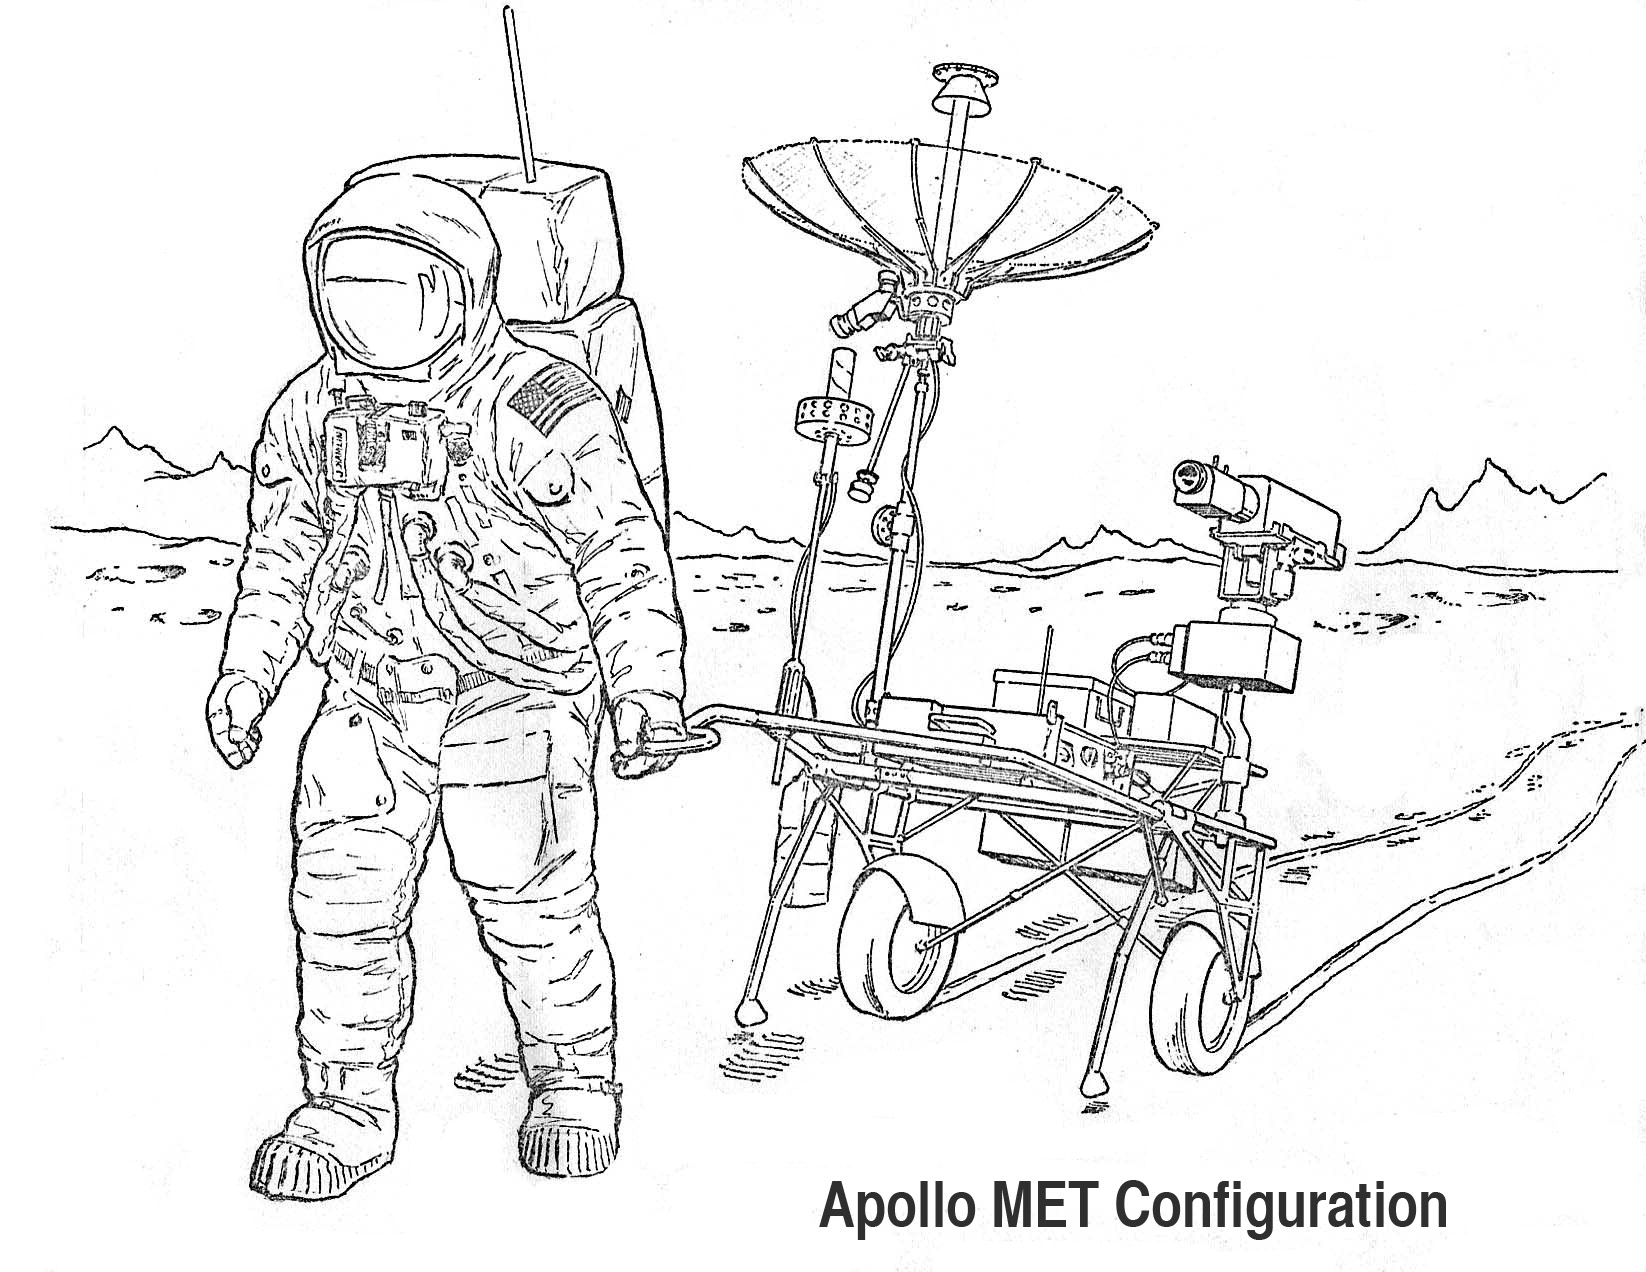 Apollo 15 Rover Diagram